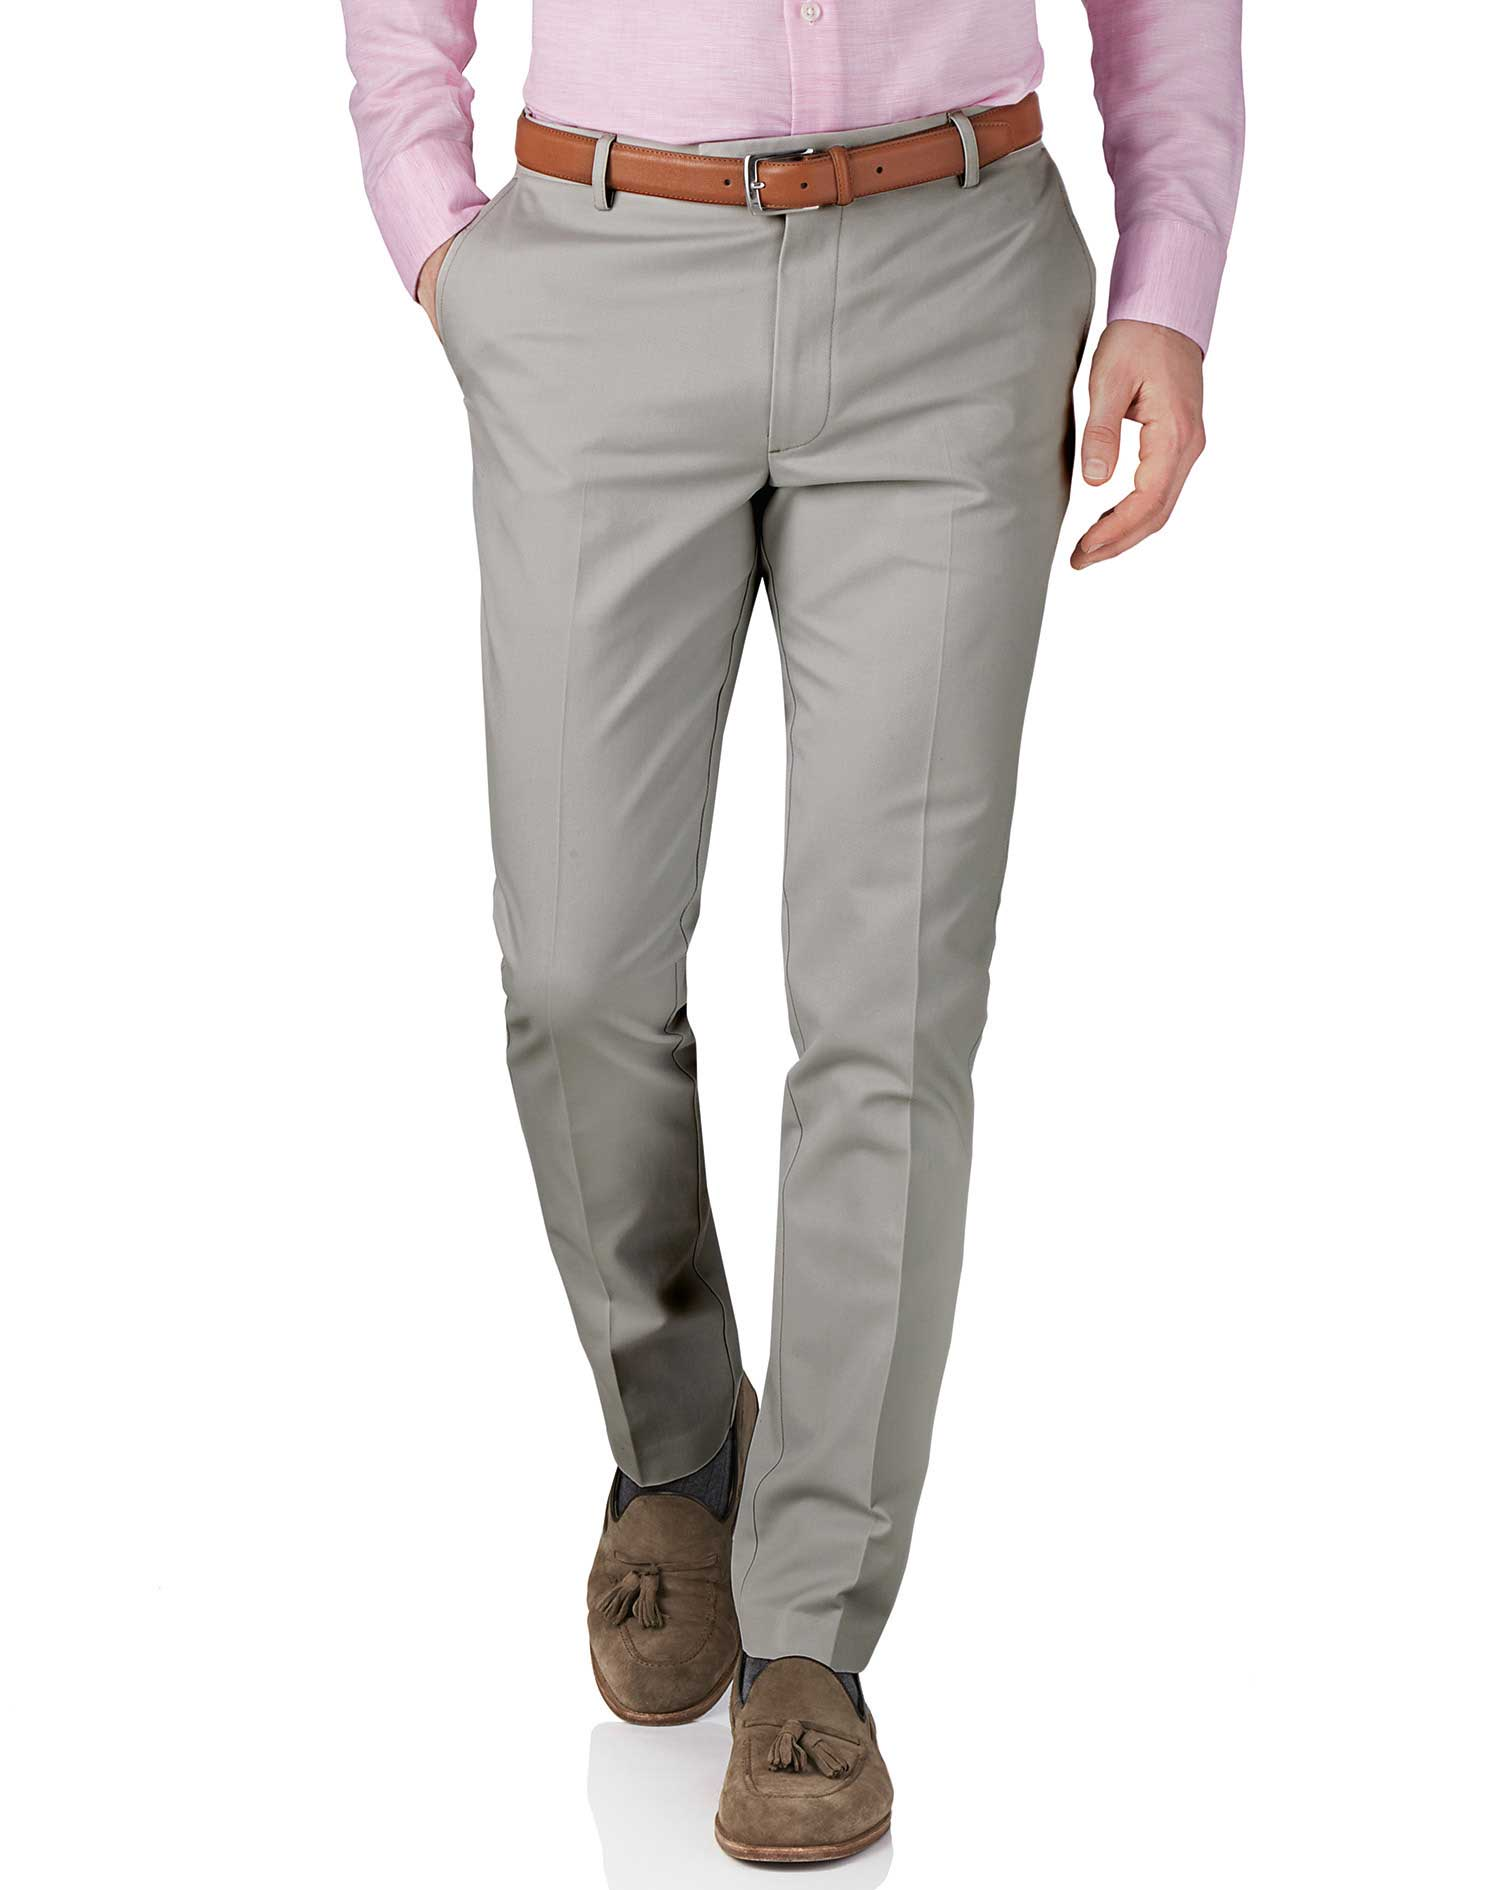 Silver Grey Extra Slim Fit Flat Front Non-Iron Cotton Chino Trousers Size W34 L29 by Charles Tyrwhit